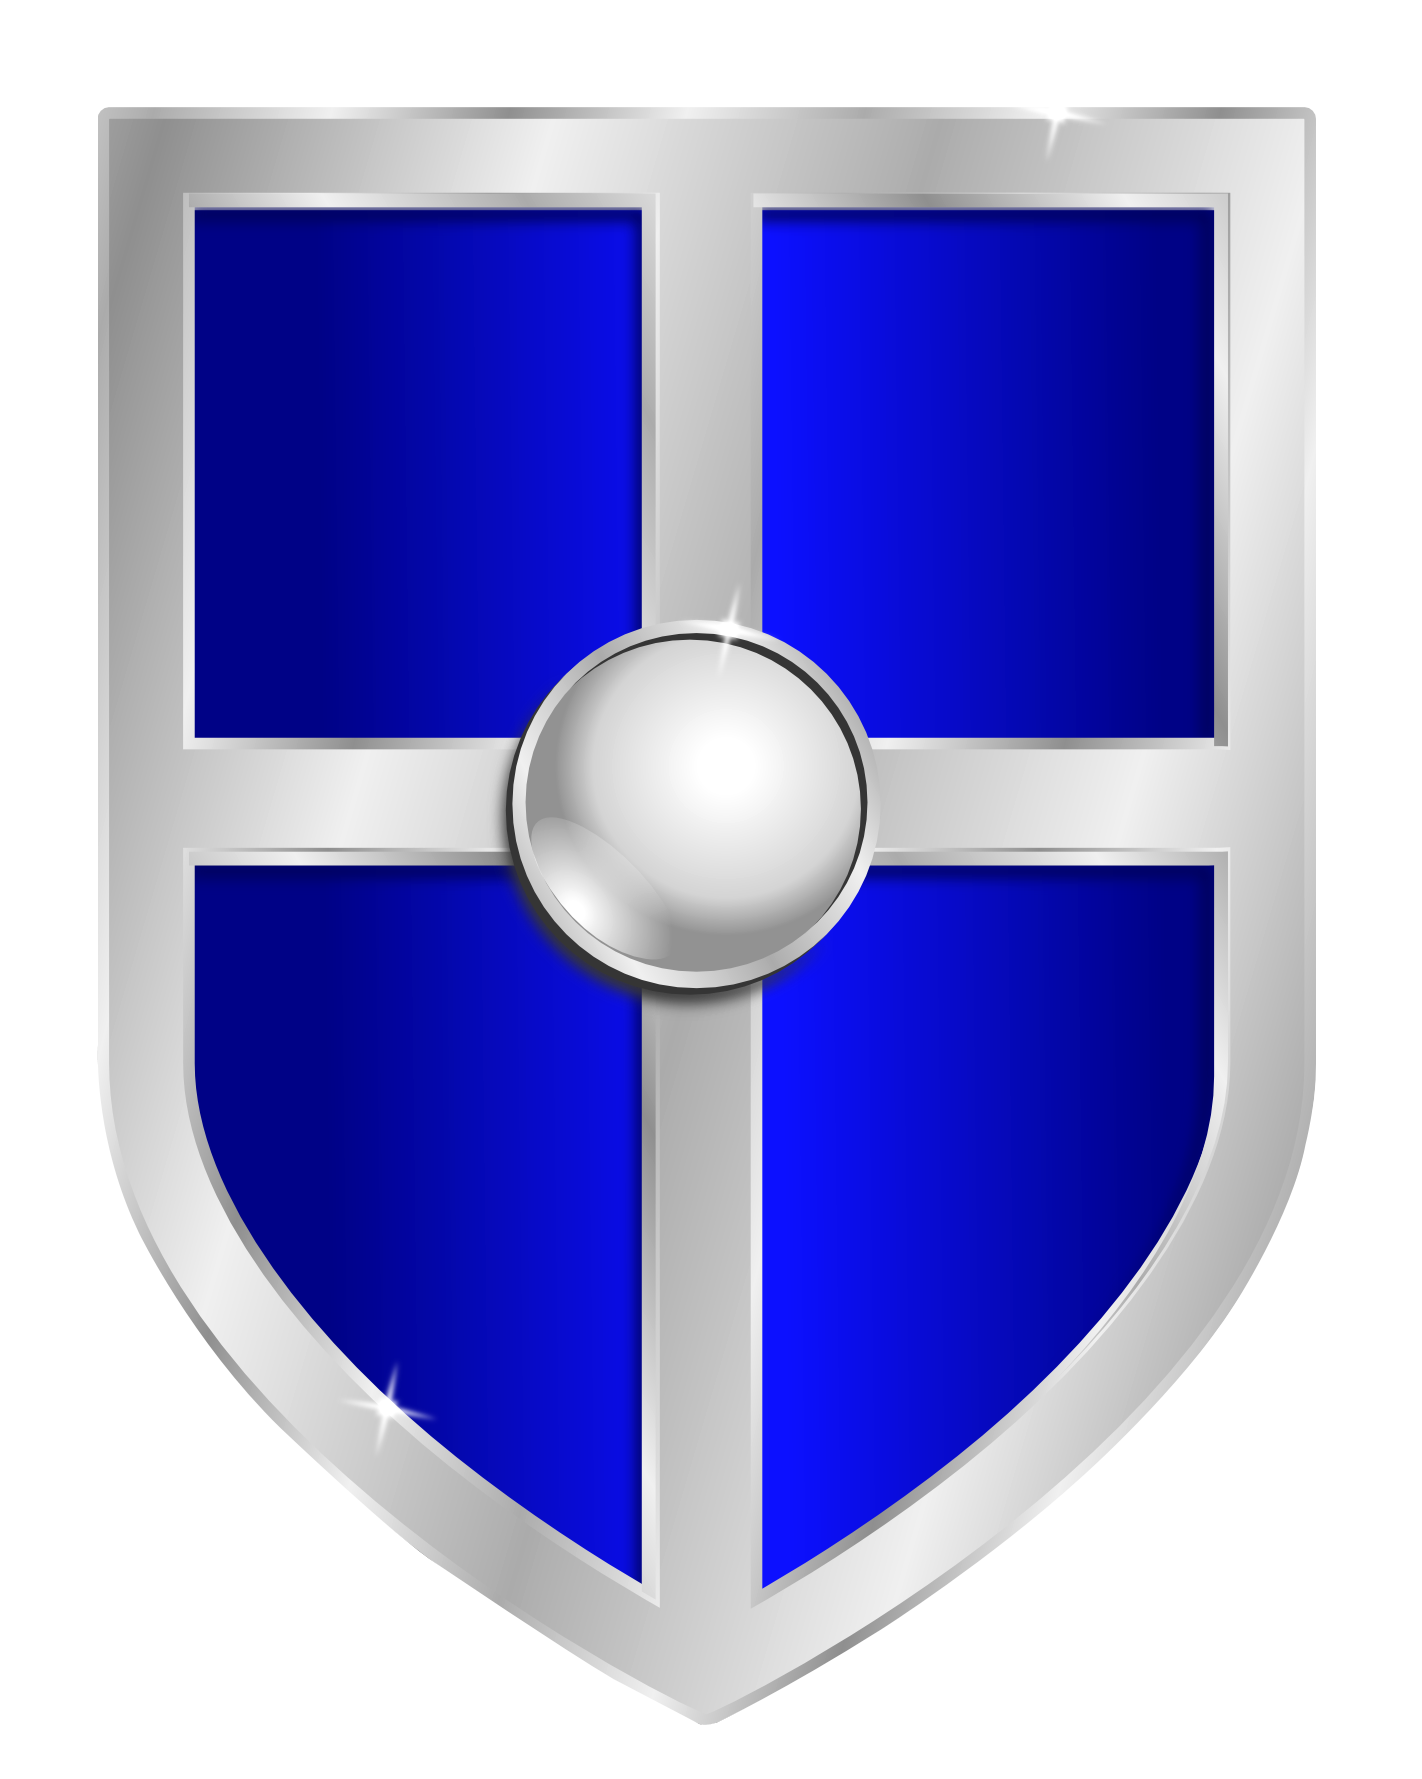 shield png transparent image pngpix #22826